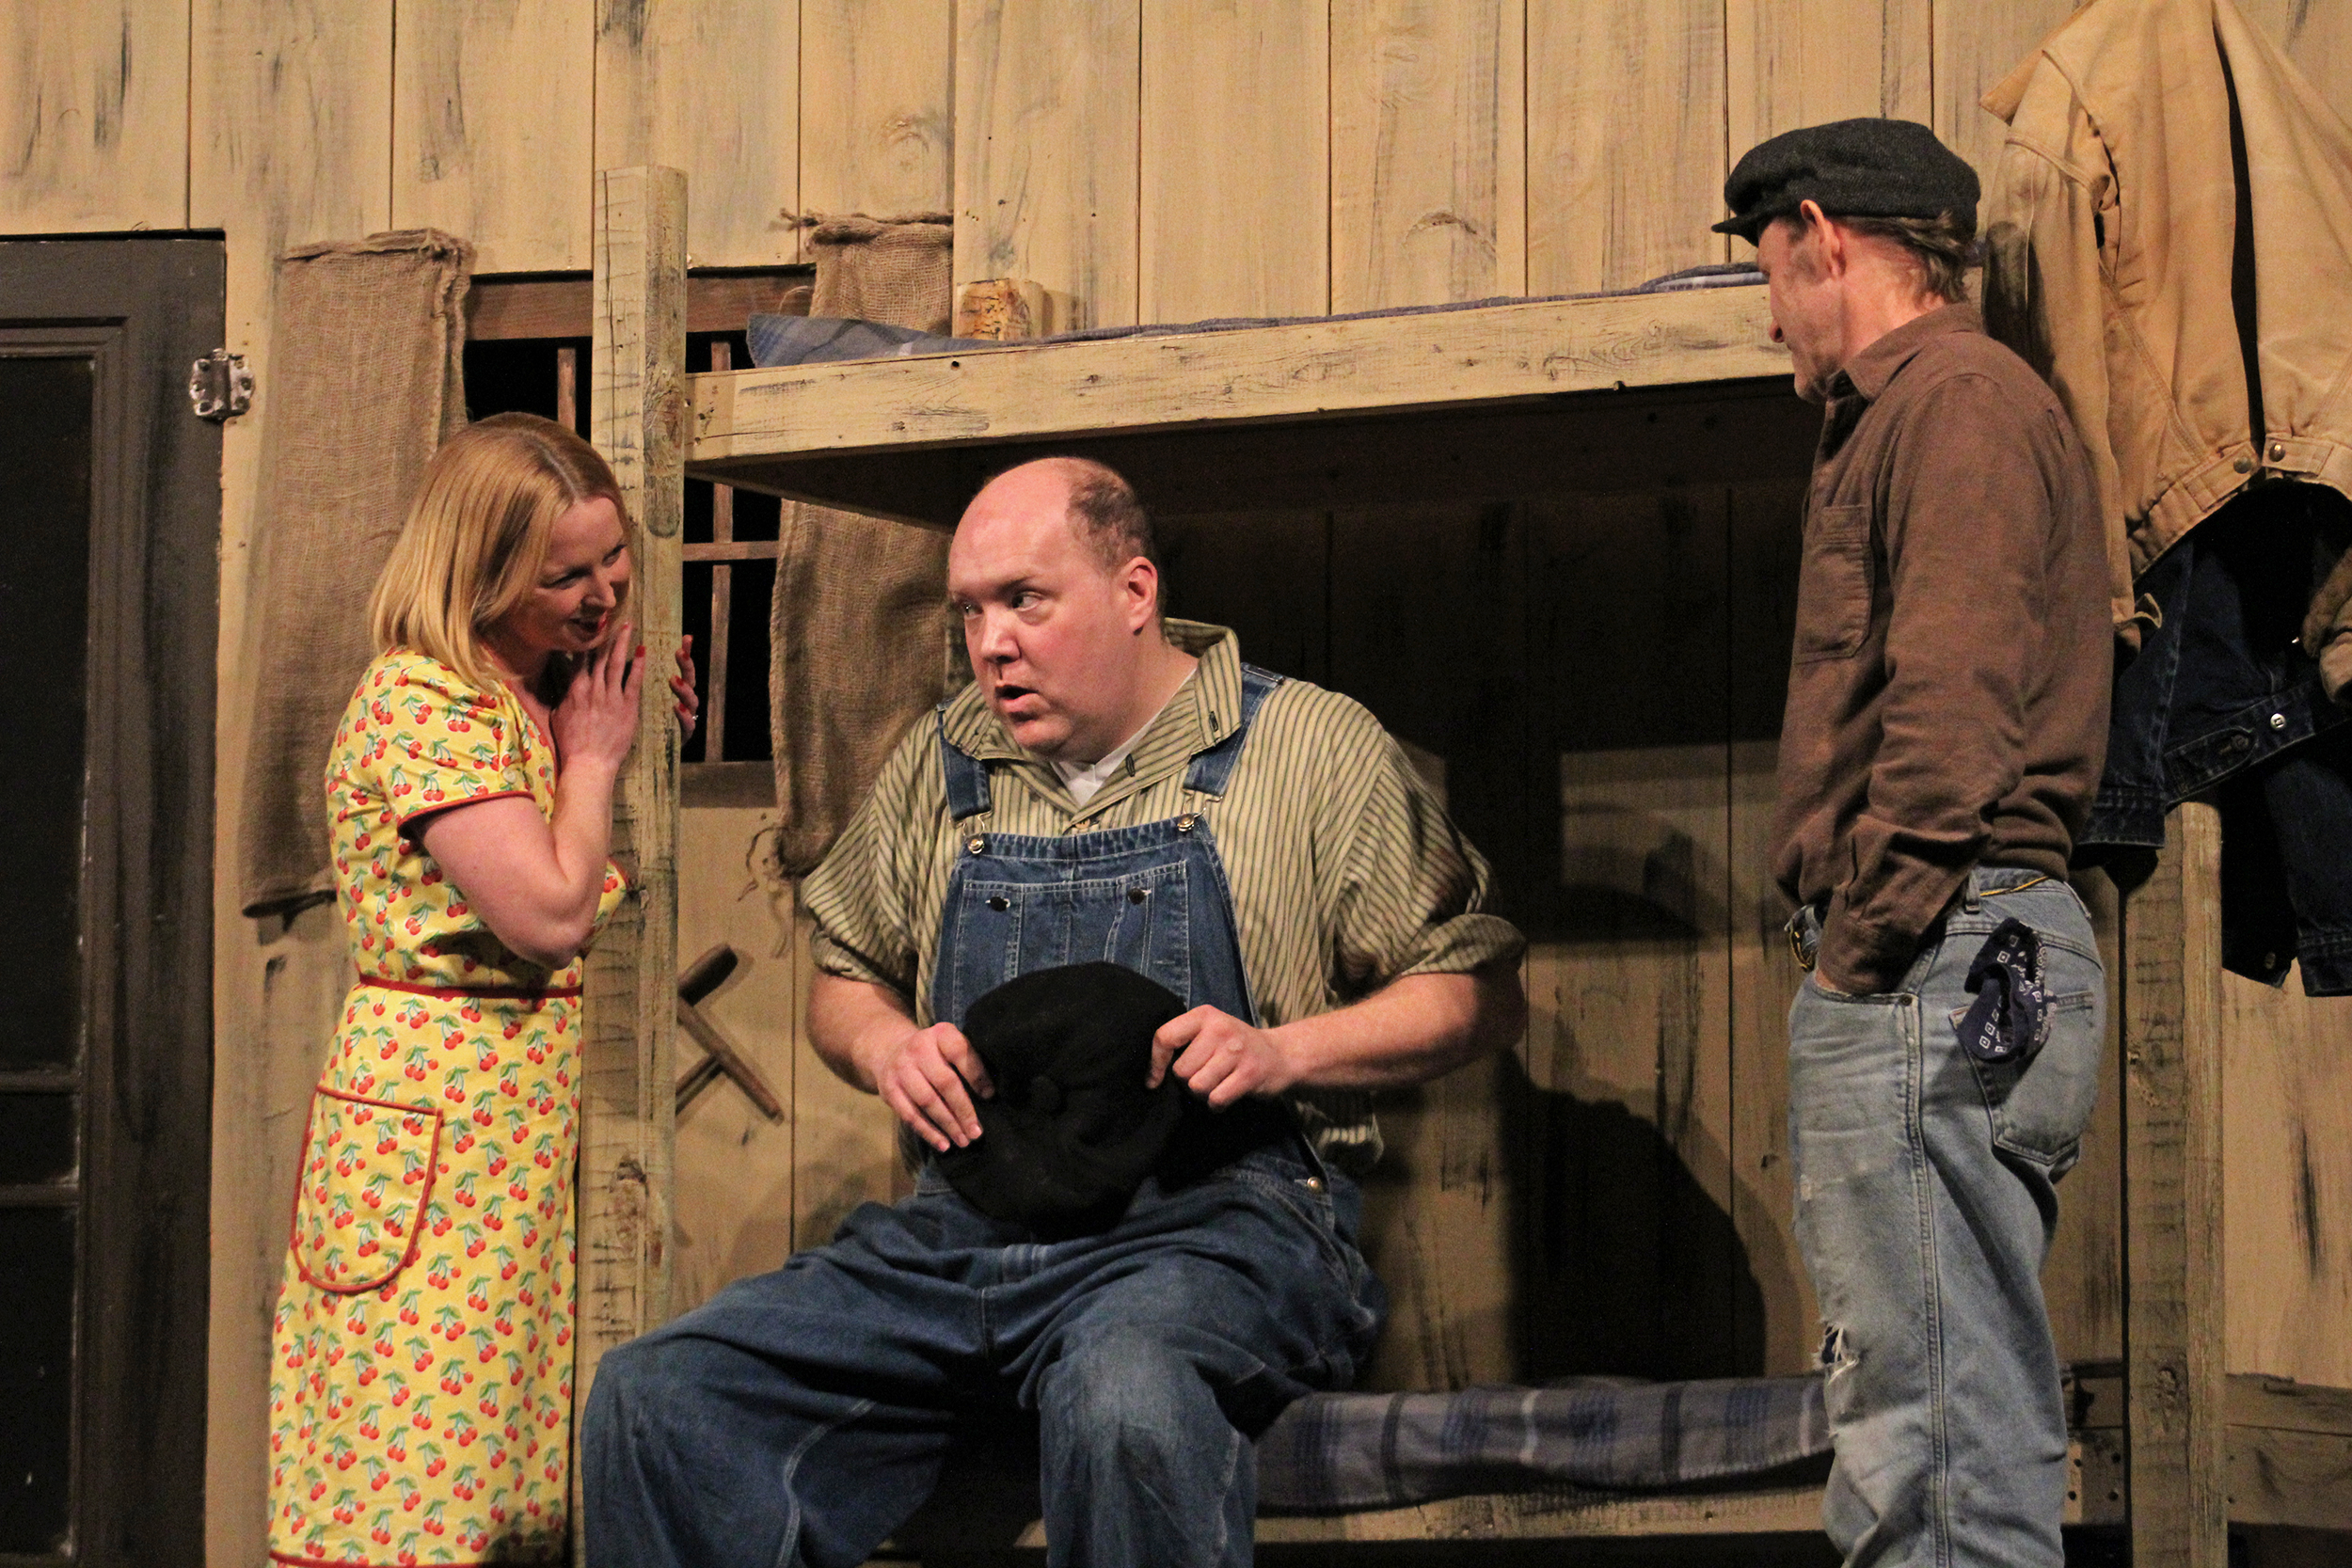 """The Geneseo Community Players put on a production of """"Of Mice and Men"""" in the Riviera Theater from Friday Jan. 19 to Saturday Jan. 20. The play featured many talented actors, including Geneseo student musical theater major sophomore Kyle Johnson who played Crooks. Pictured above from left to right: Curley's wife (Amanda Lynch), Lenny Small (Toby Drowne) and George Milton (Chris Norton). (Catherine White/Arts and Entertainment Editor)"""